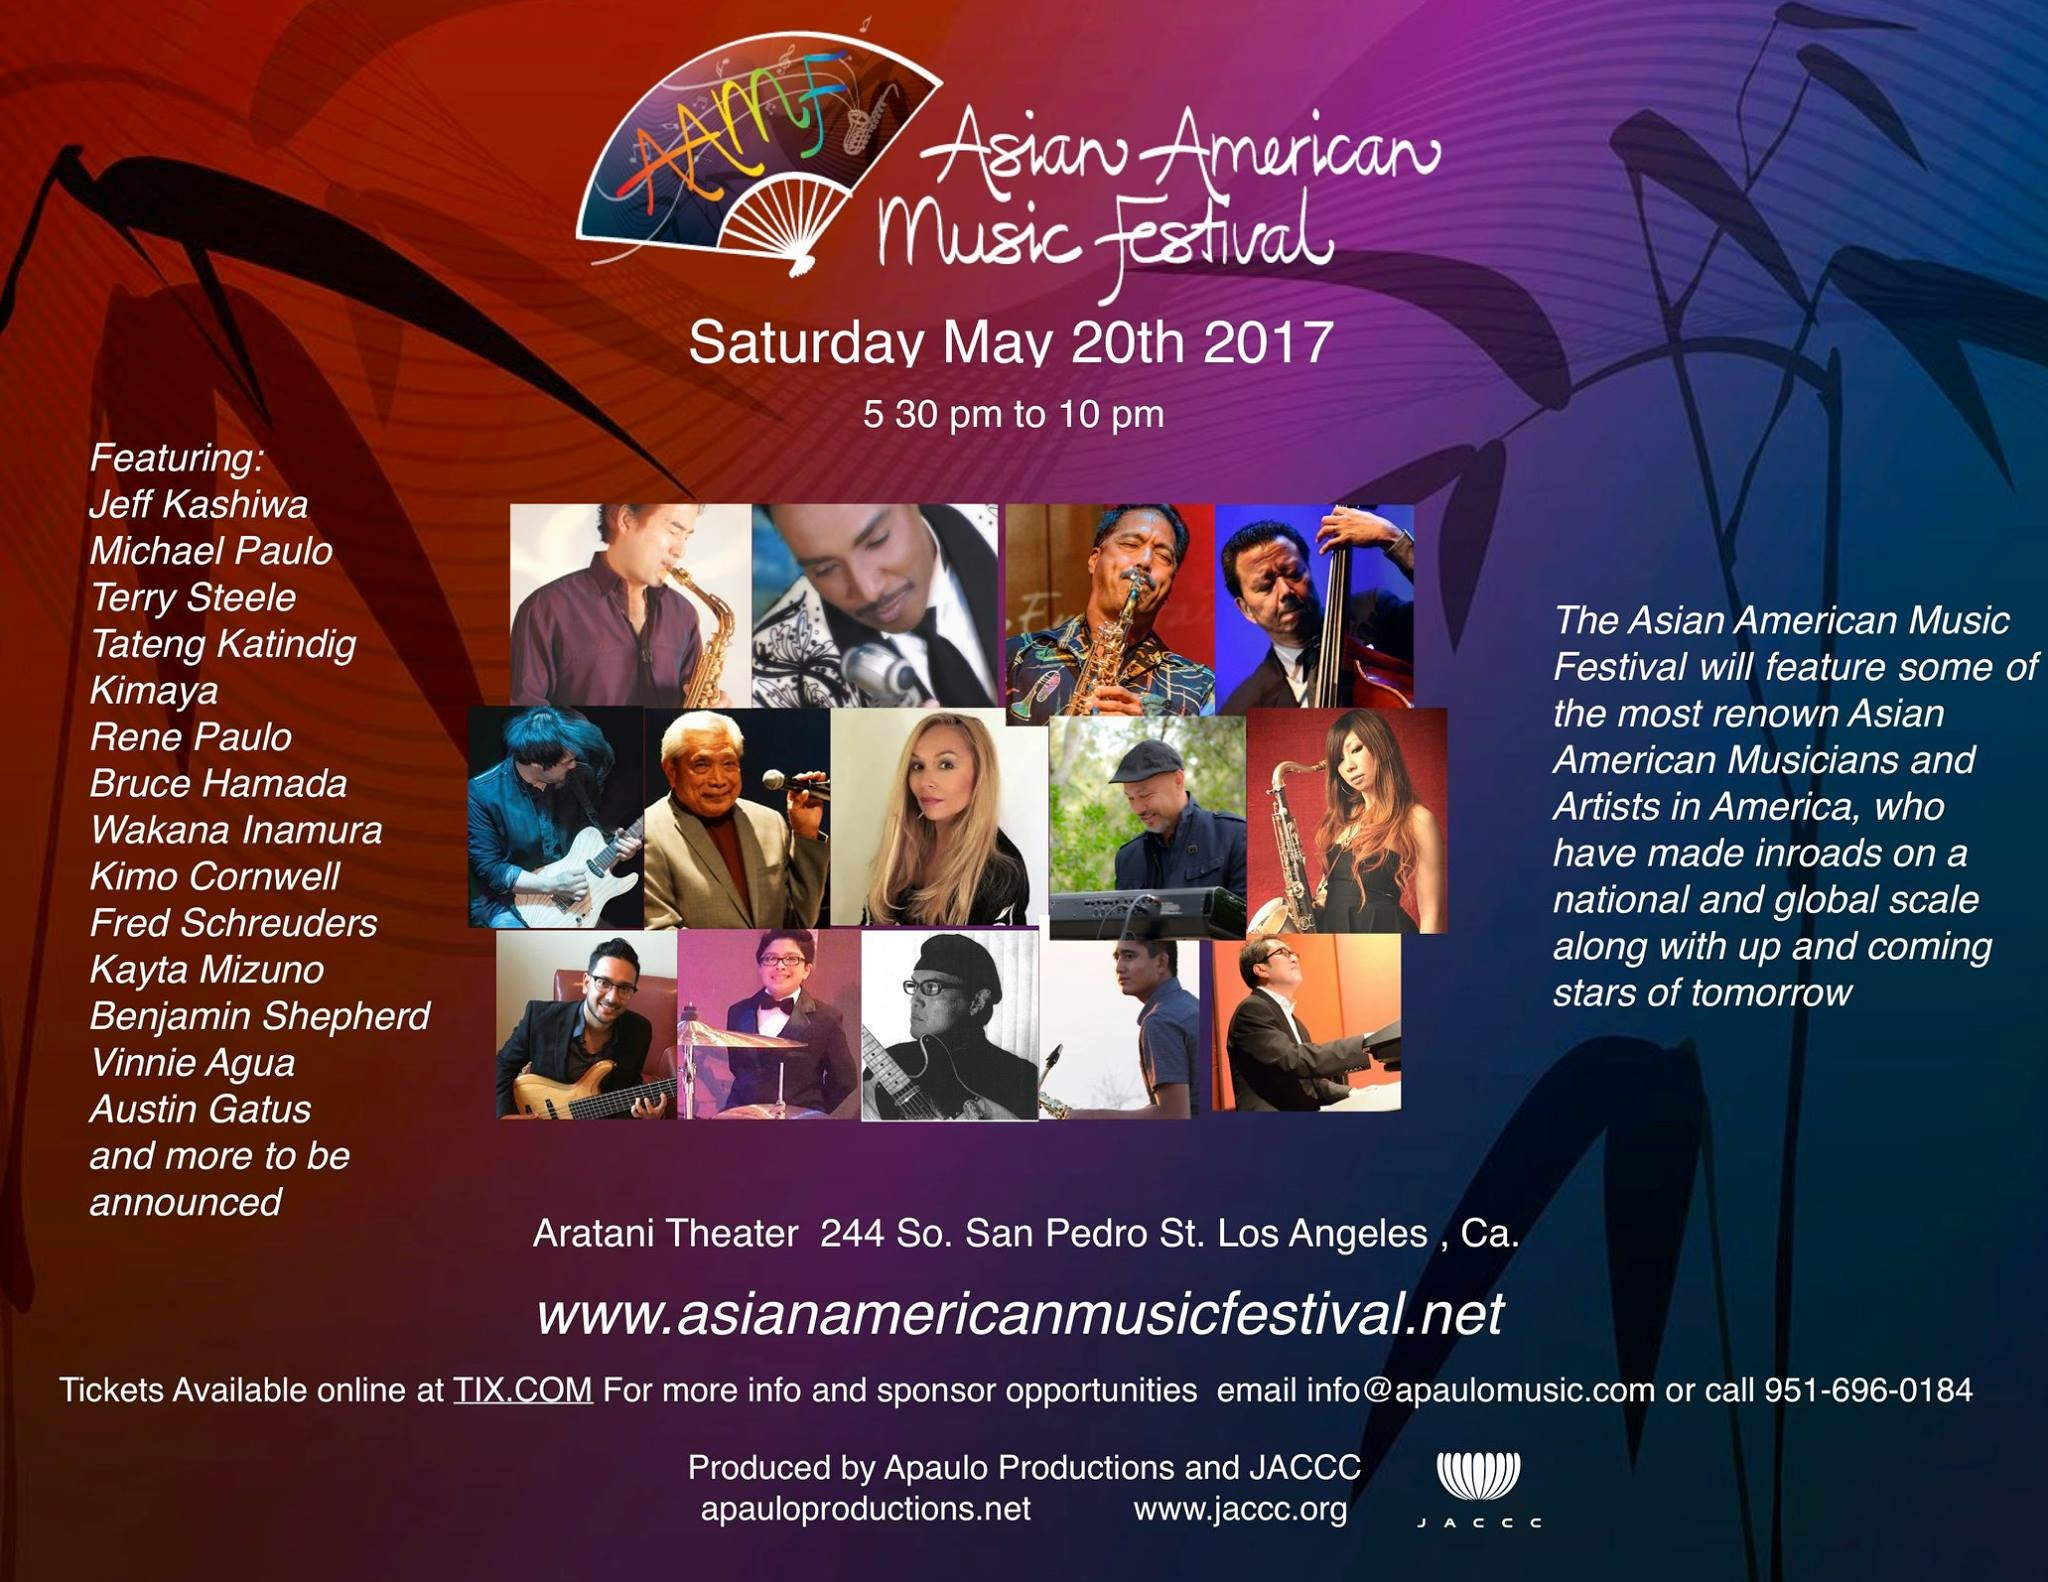 Past Promo for the Asian American Music Festival on May 20th 2017, featuring Bruce Hamada